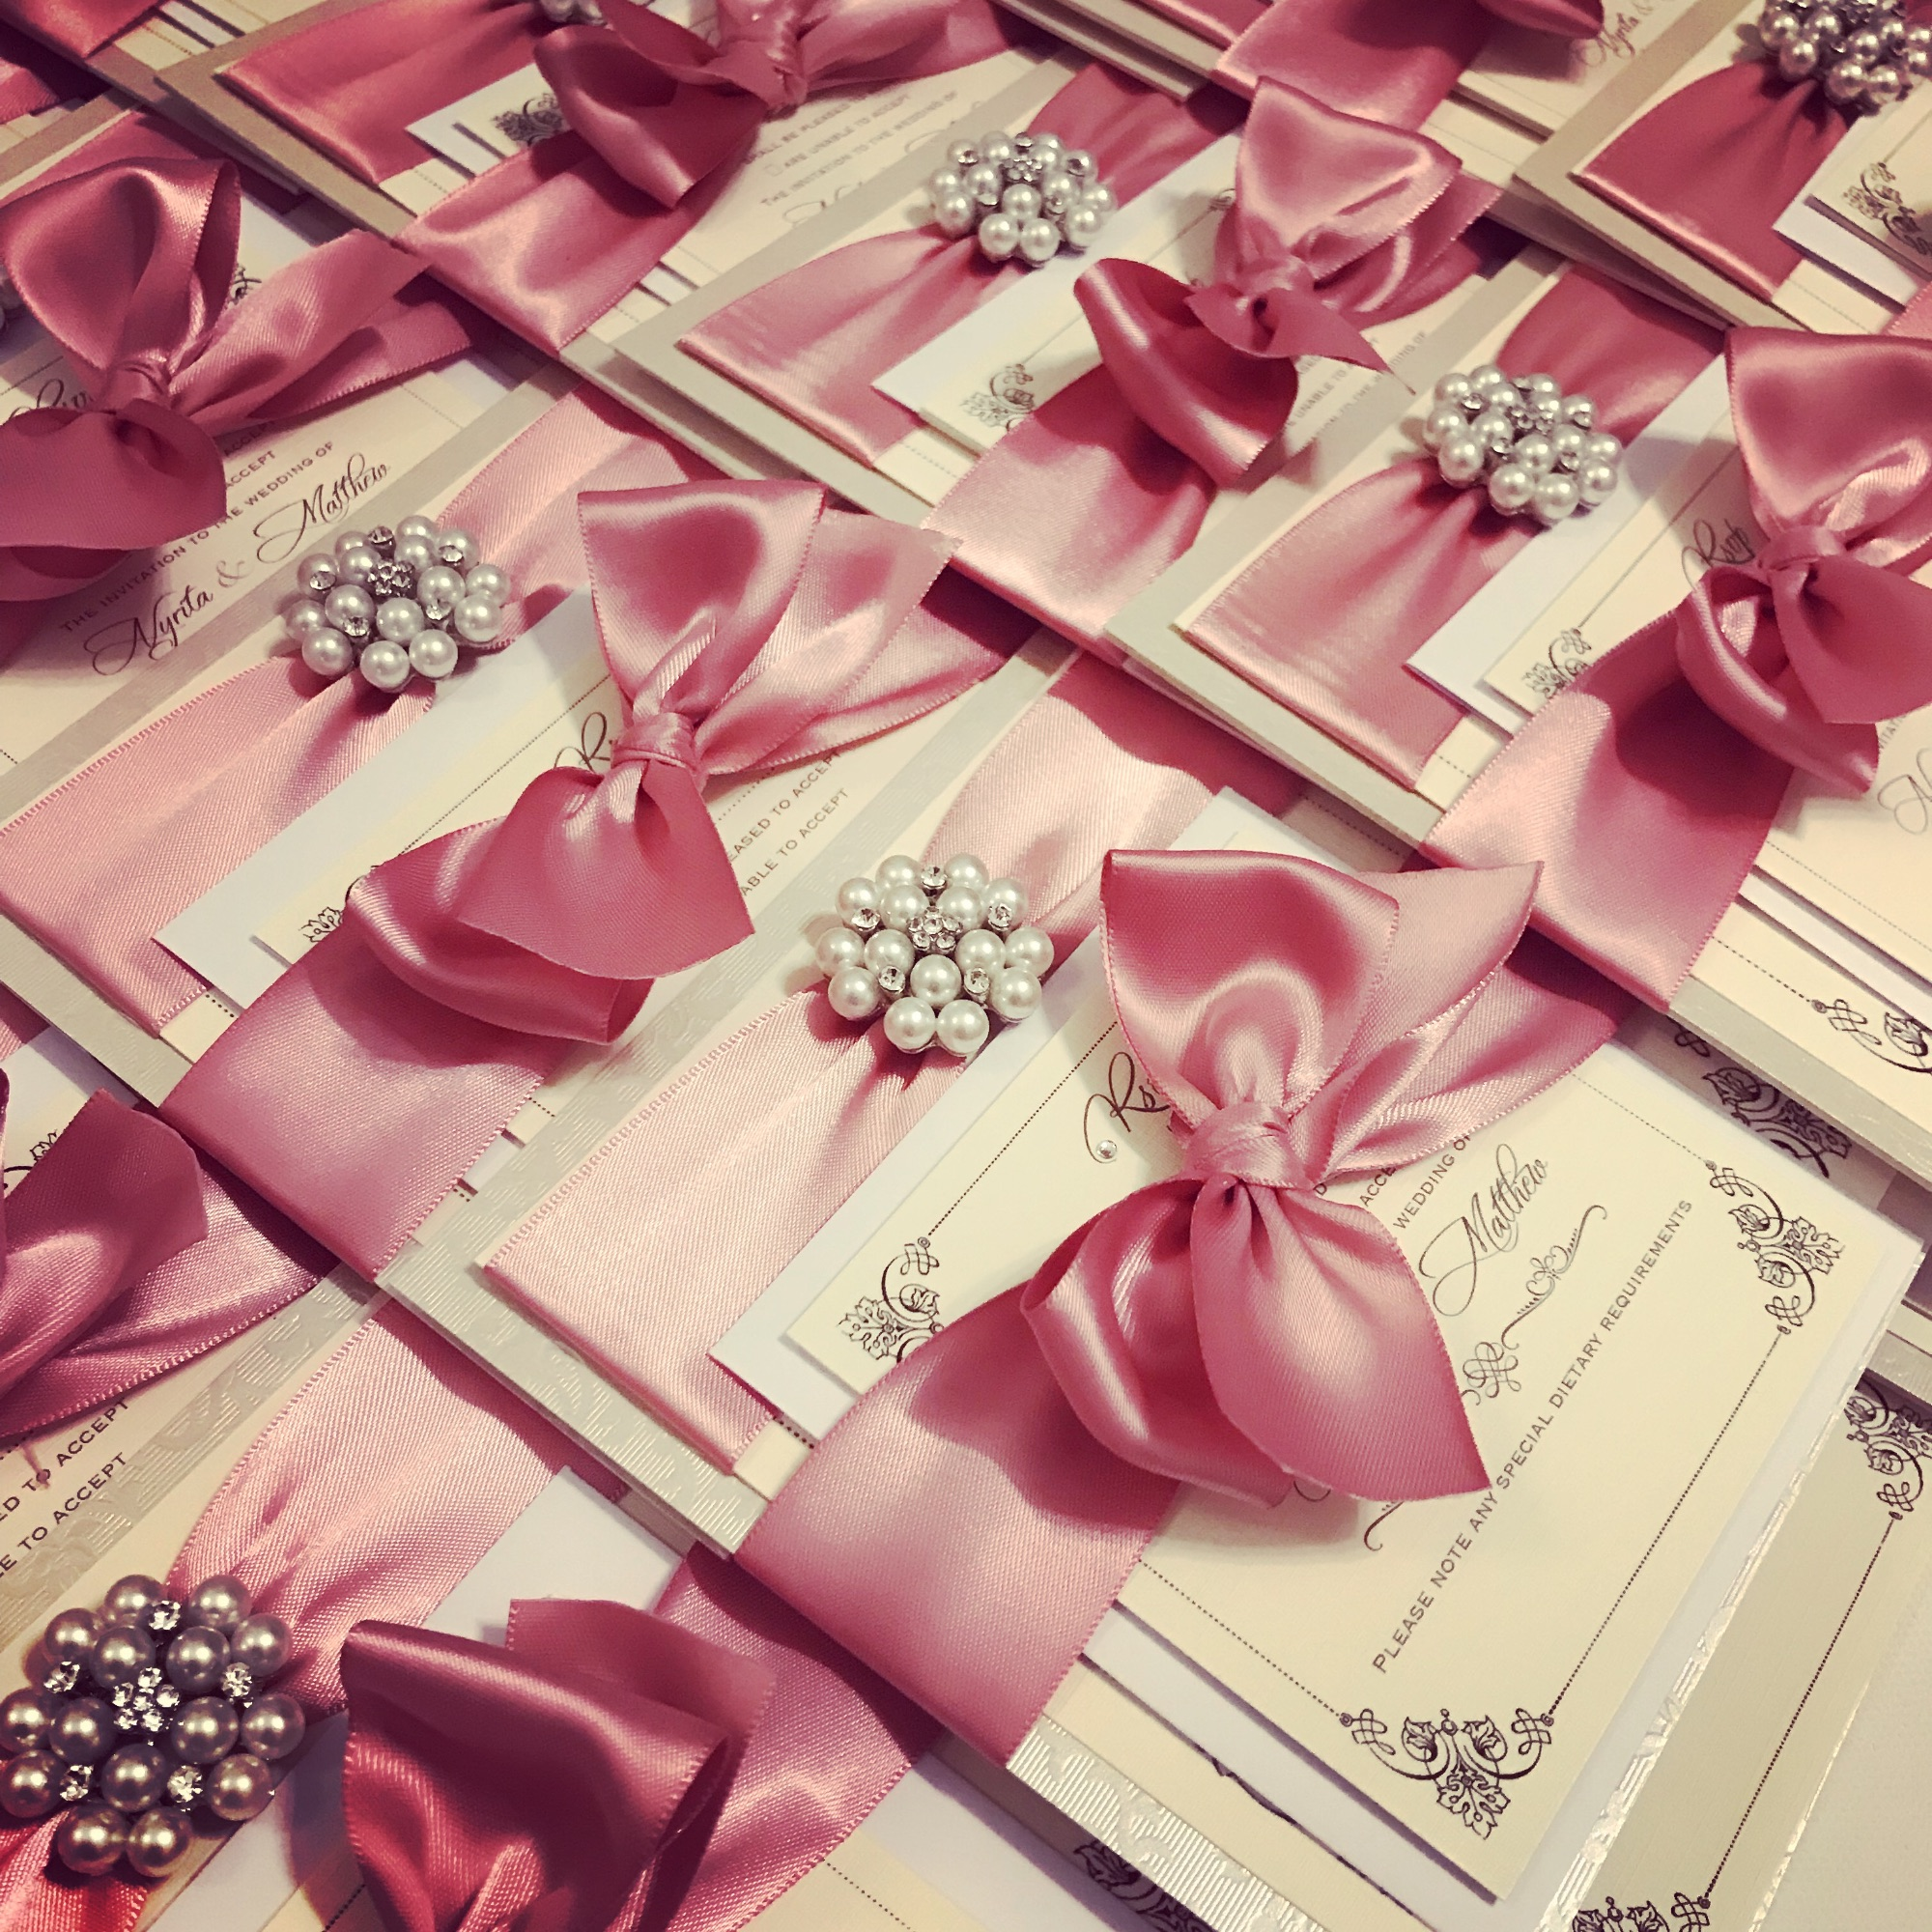 Pearl wedding invitations with bow